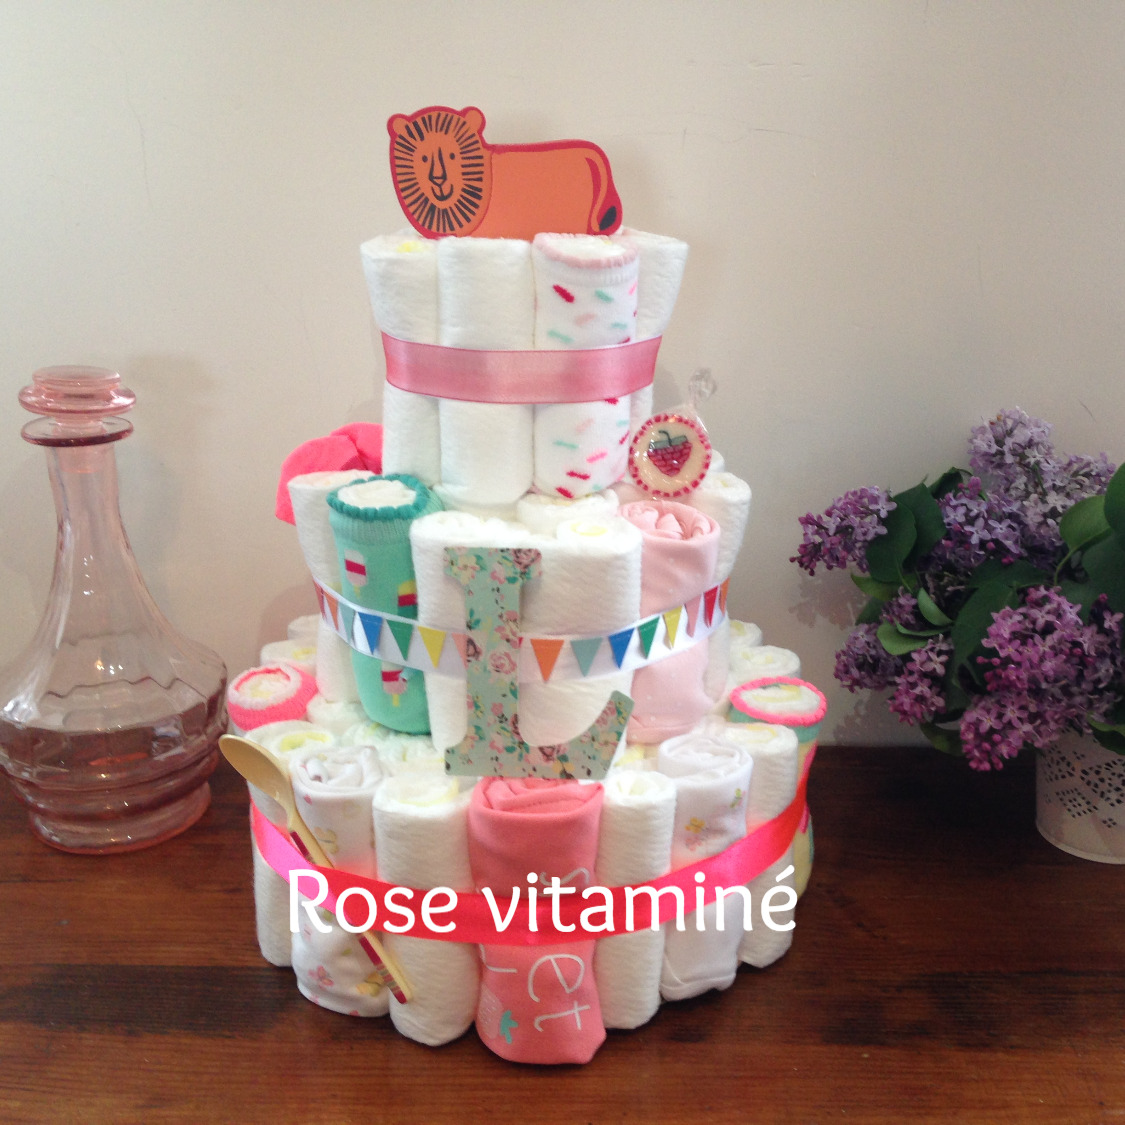 Rose Vitaminé